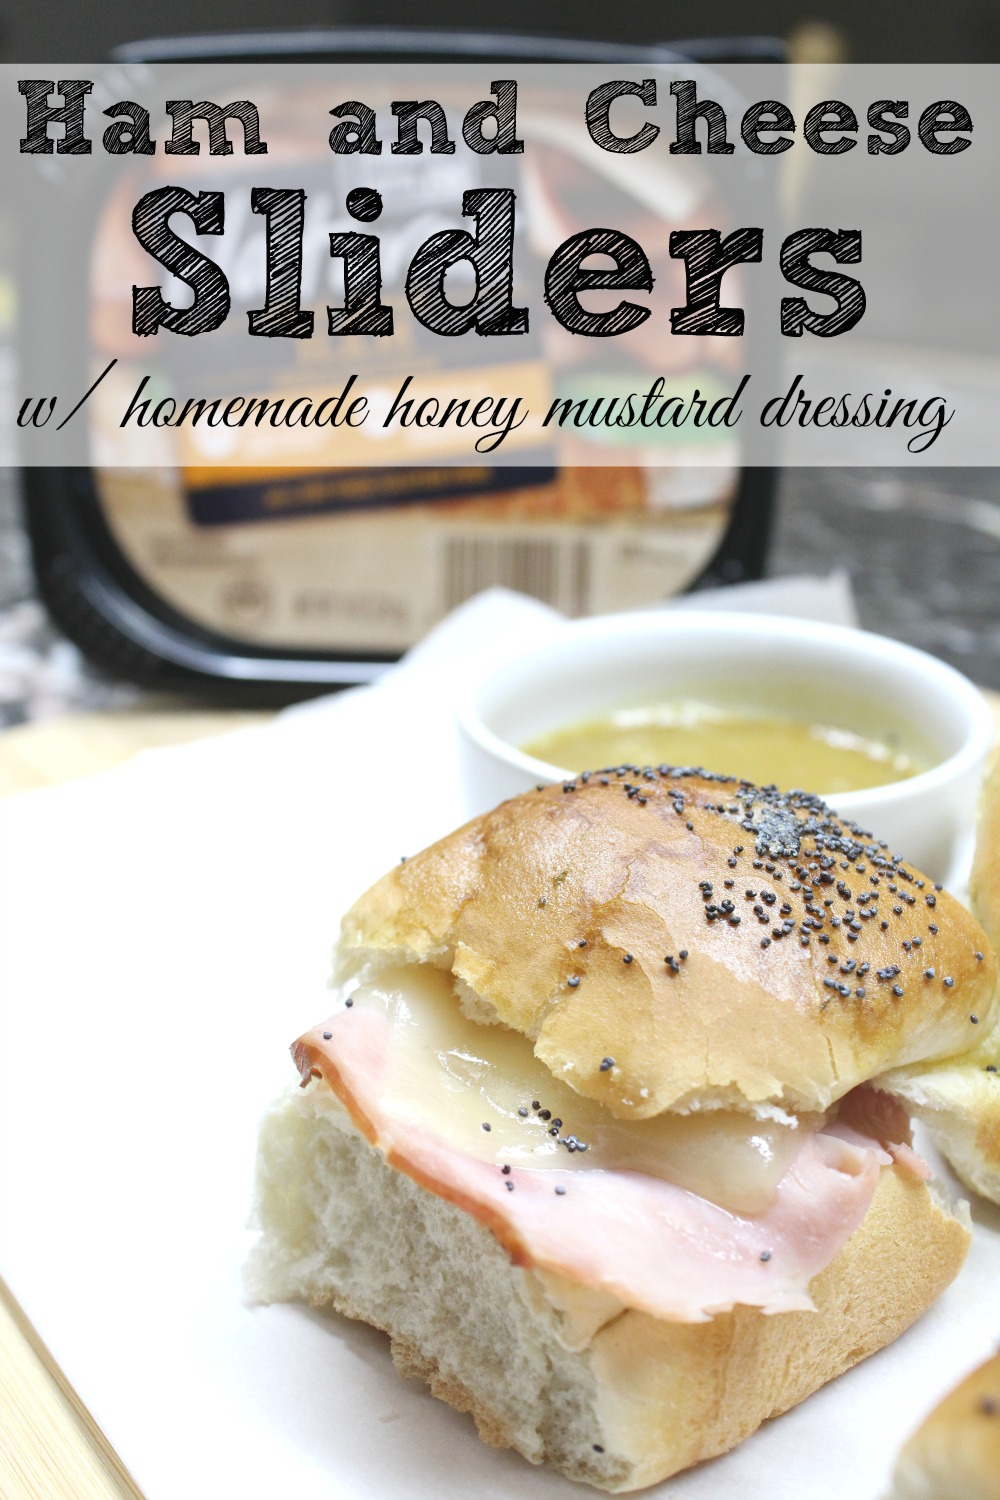 Ham and cheese sliders - Yummy! This recipe looks so delicious and fast - and I can definitely feel good about skipping the drive-through. Plus my kids will totally devour them too! Win-win!